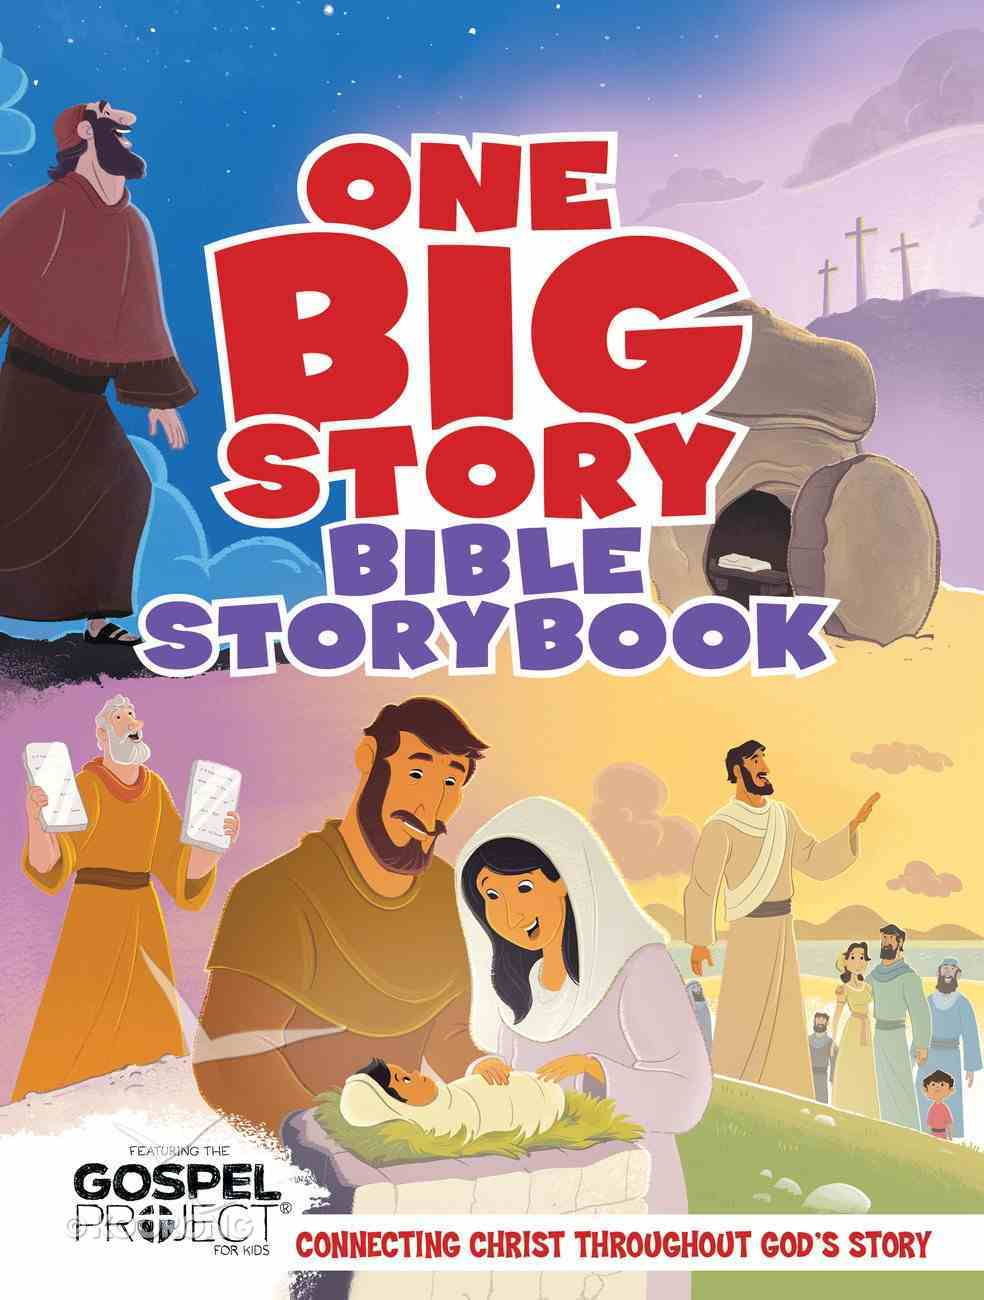 One Big Story Bible Storybook: Connecting Christ Throughout God's Story Hardback